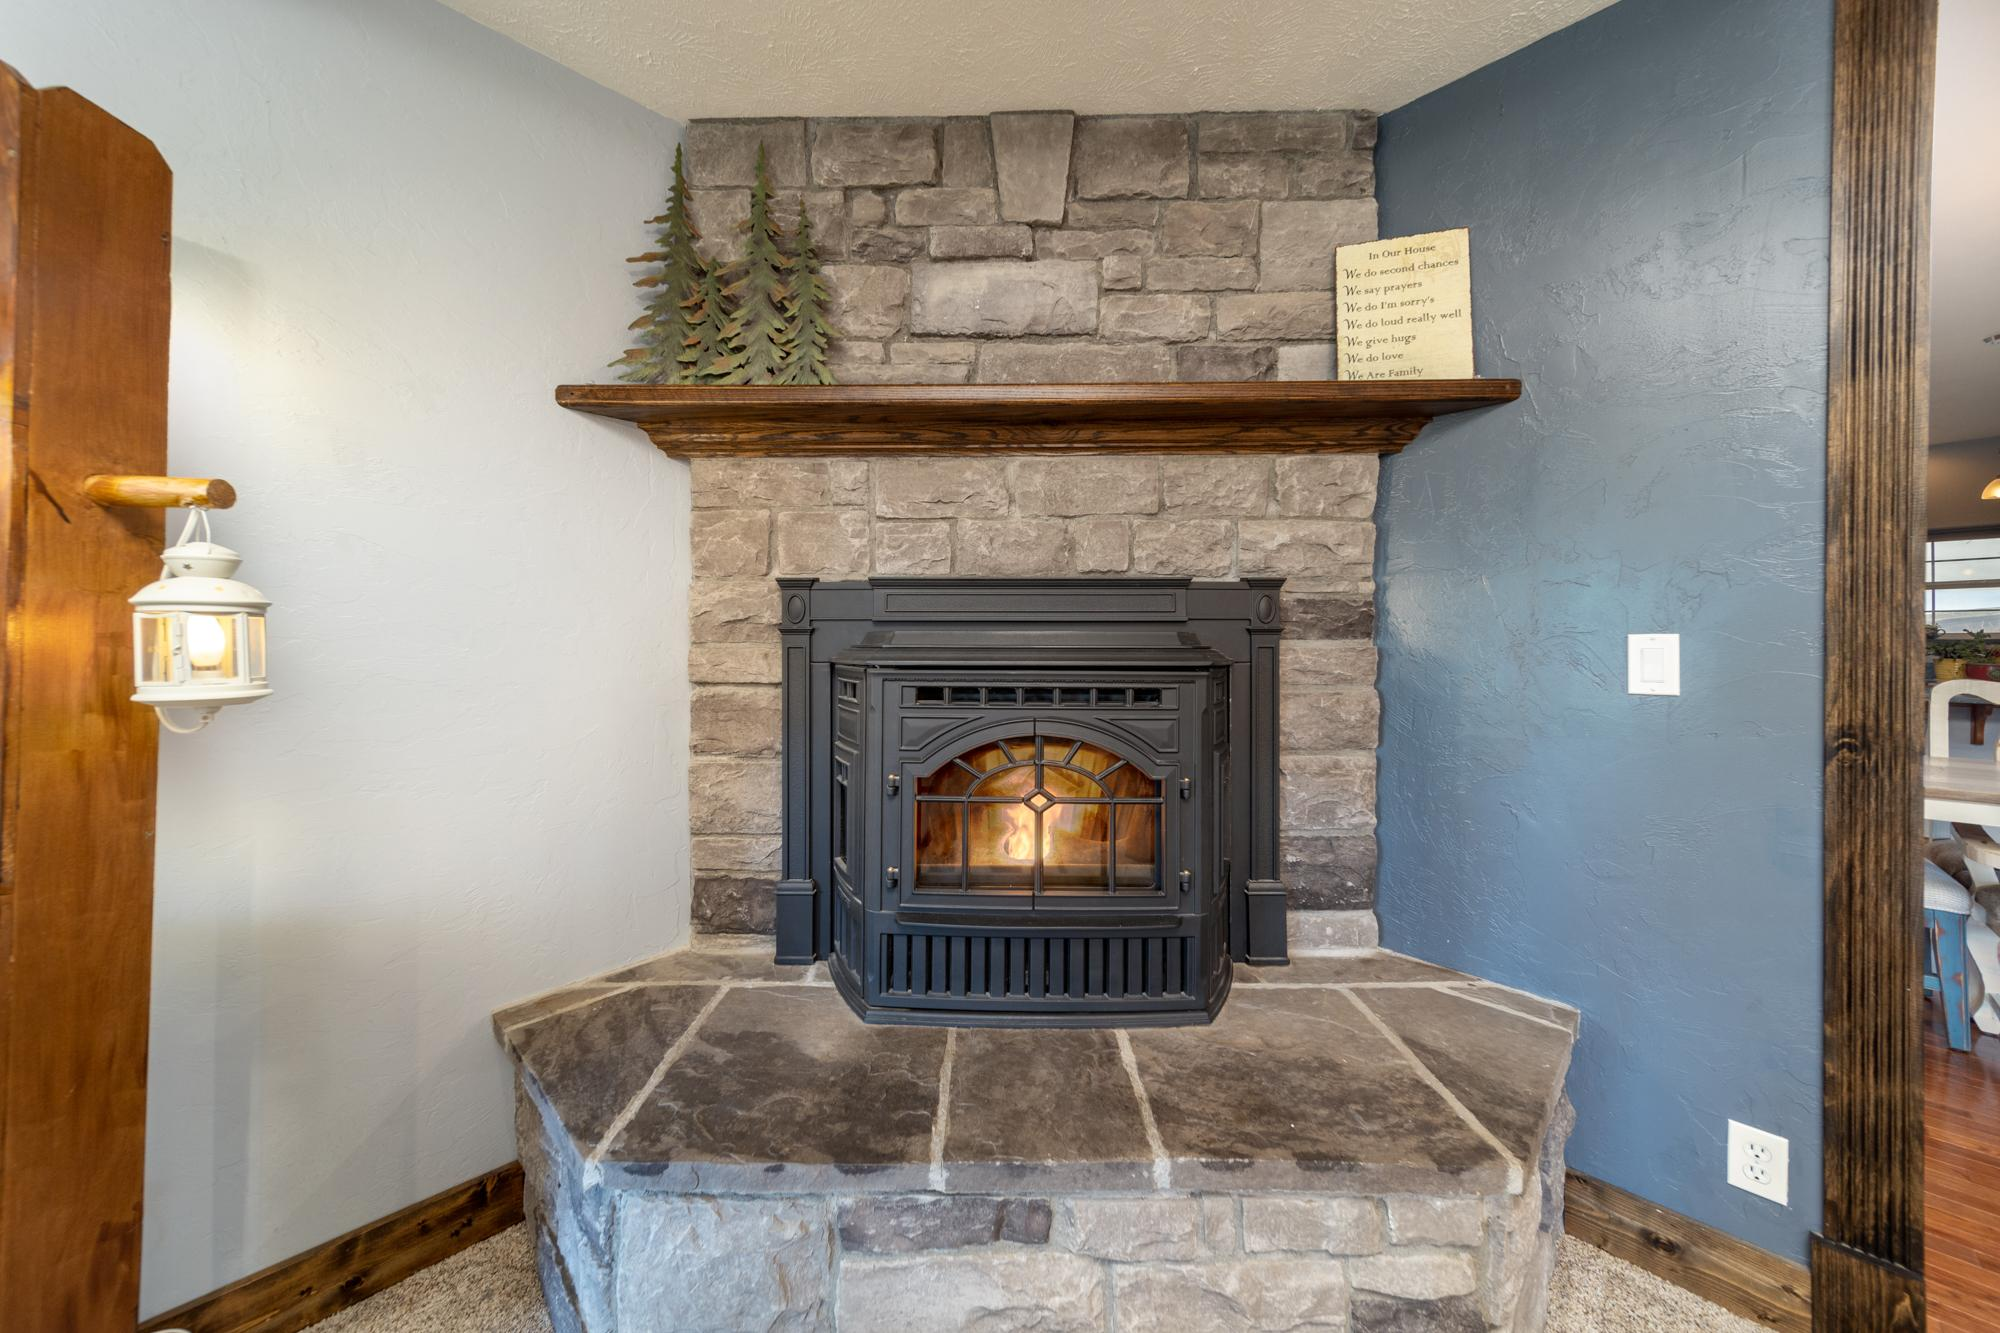 Pellet Stove - 12703 6100 Rd Montrose, CO 81403 - Atha Team Country Real Estate